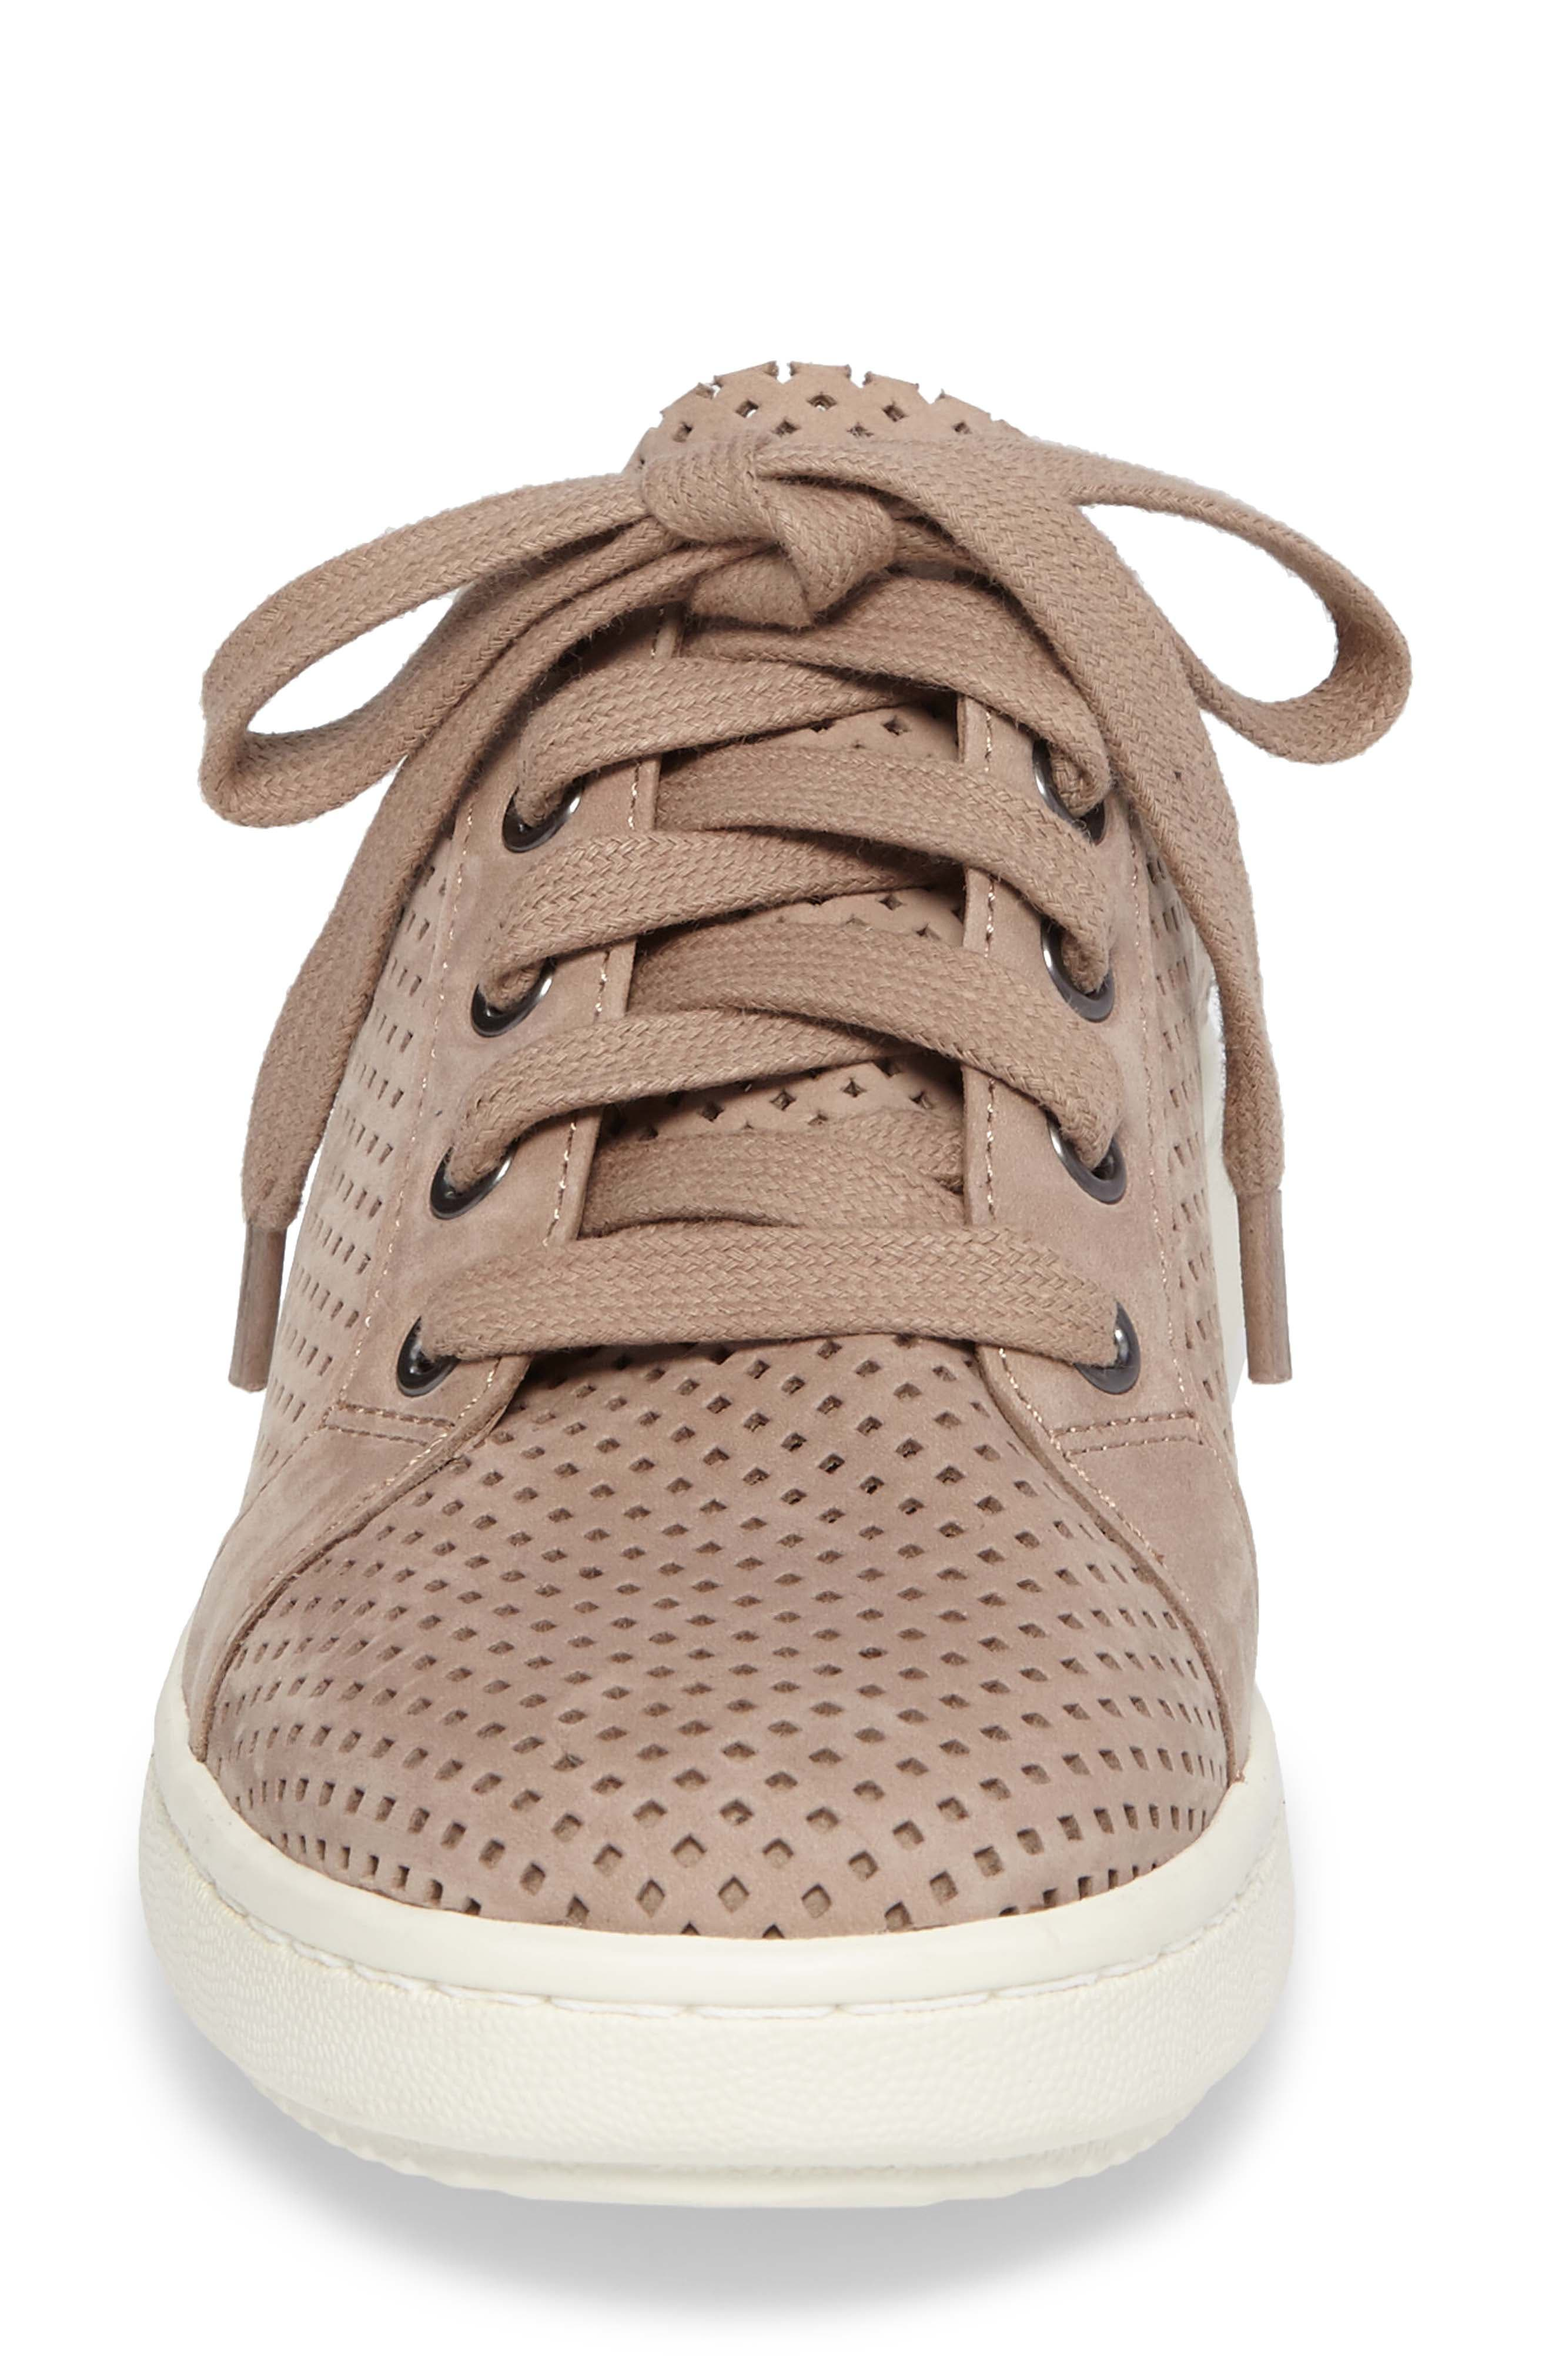 Clifton Perforated Sneaker,                             Alternate thumbnail 4, color,                             Earth Perforated Leather